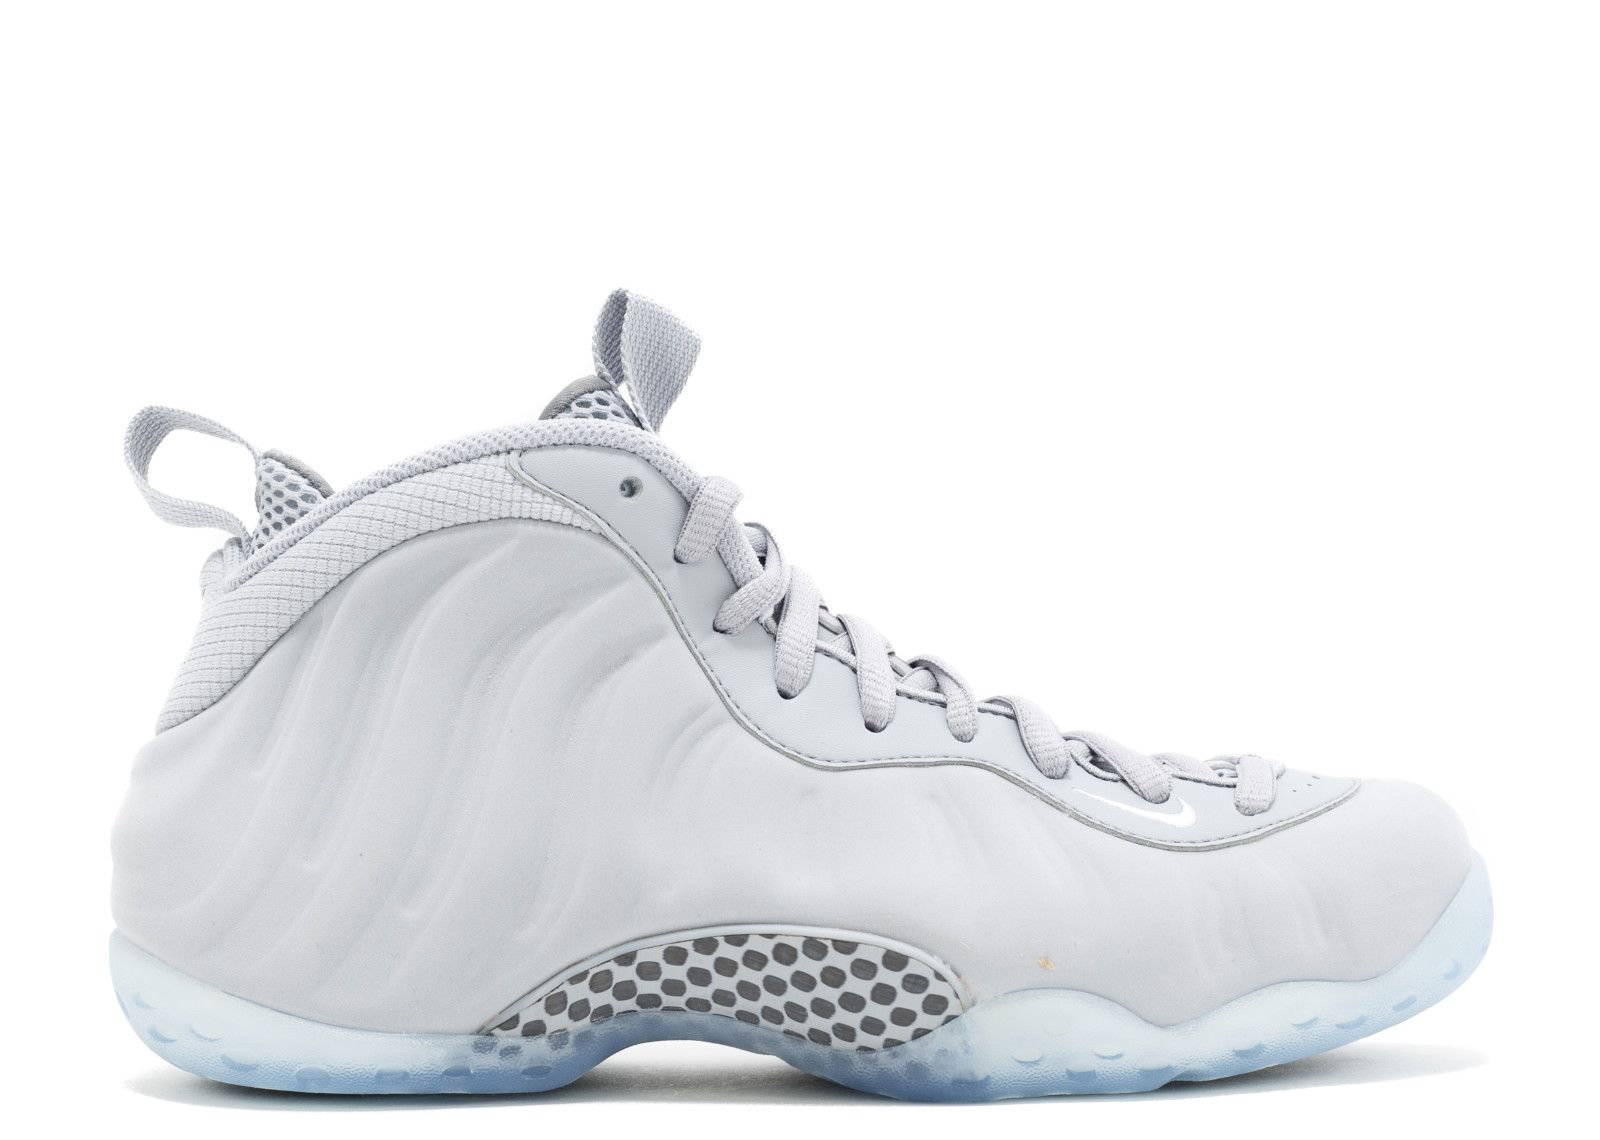 377b835e00e ... airfoamposite by Joan Paponette. Visit